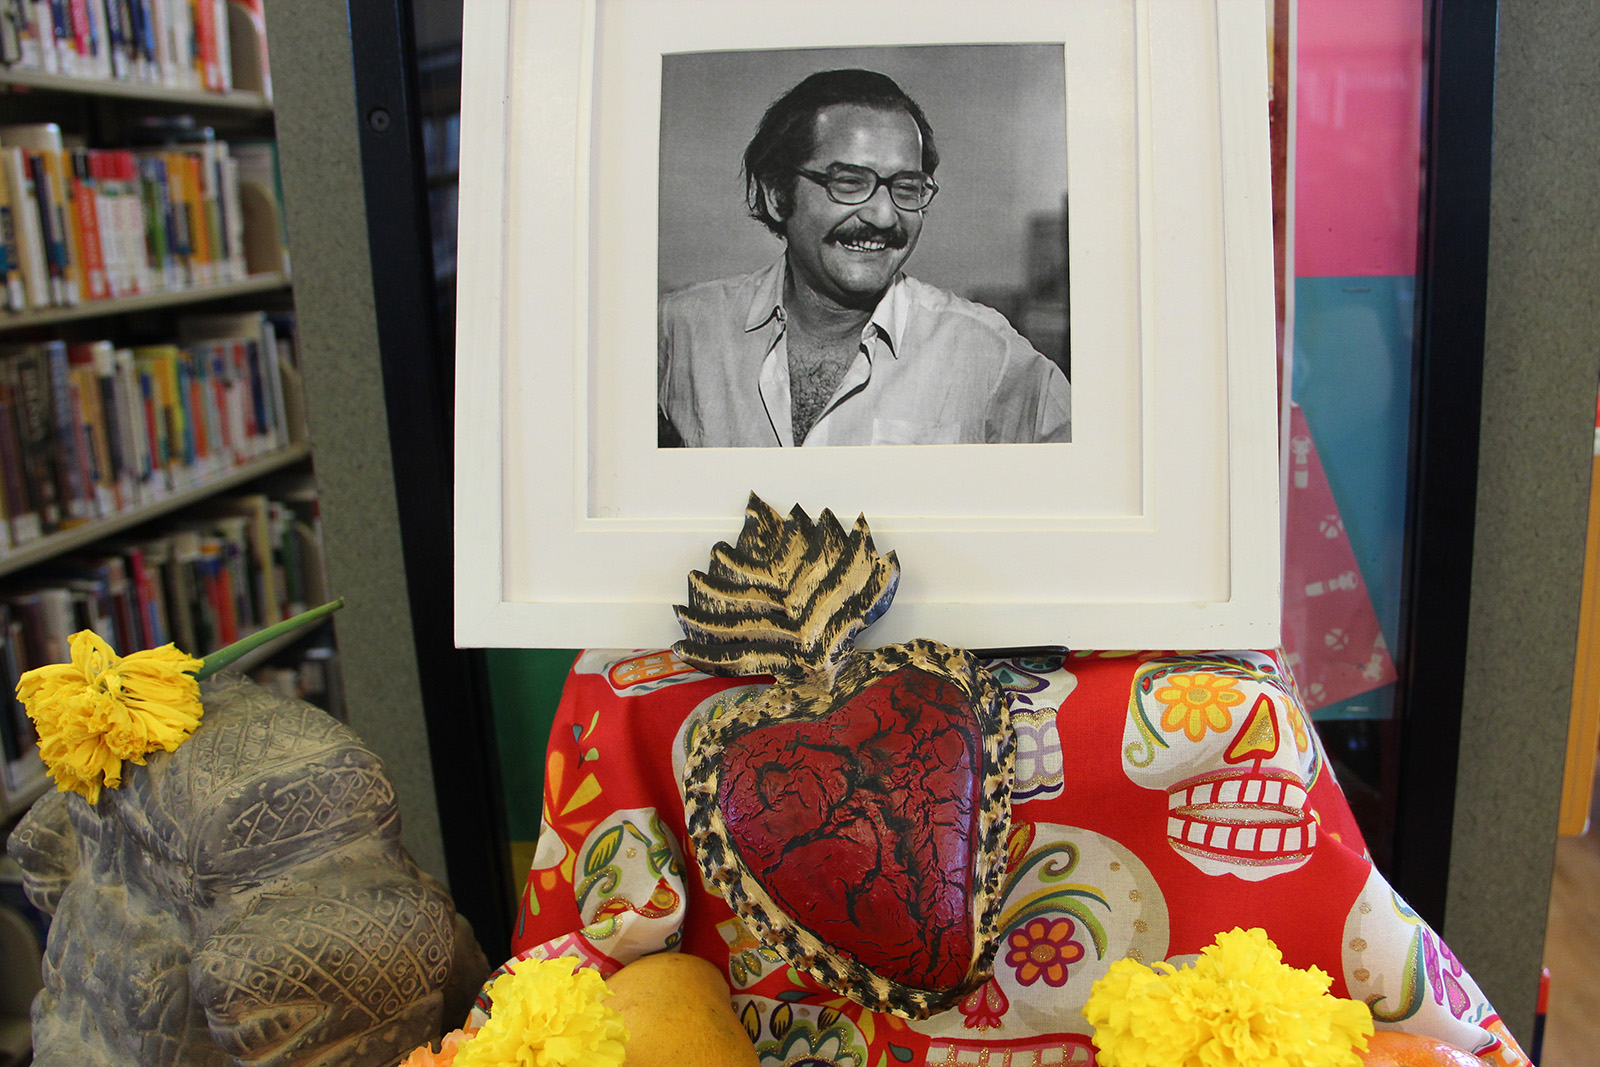 Poets, Scholars Pay Tribute to Carlos Fuentes